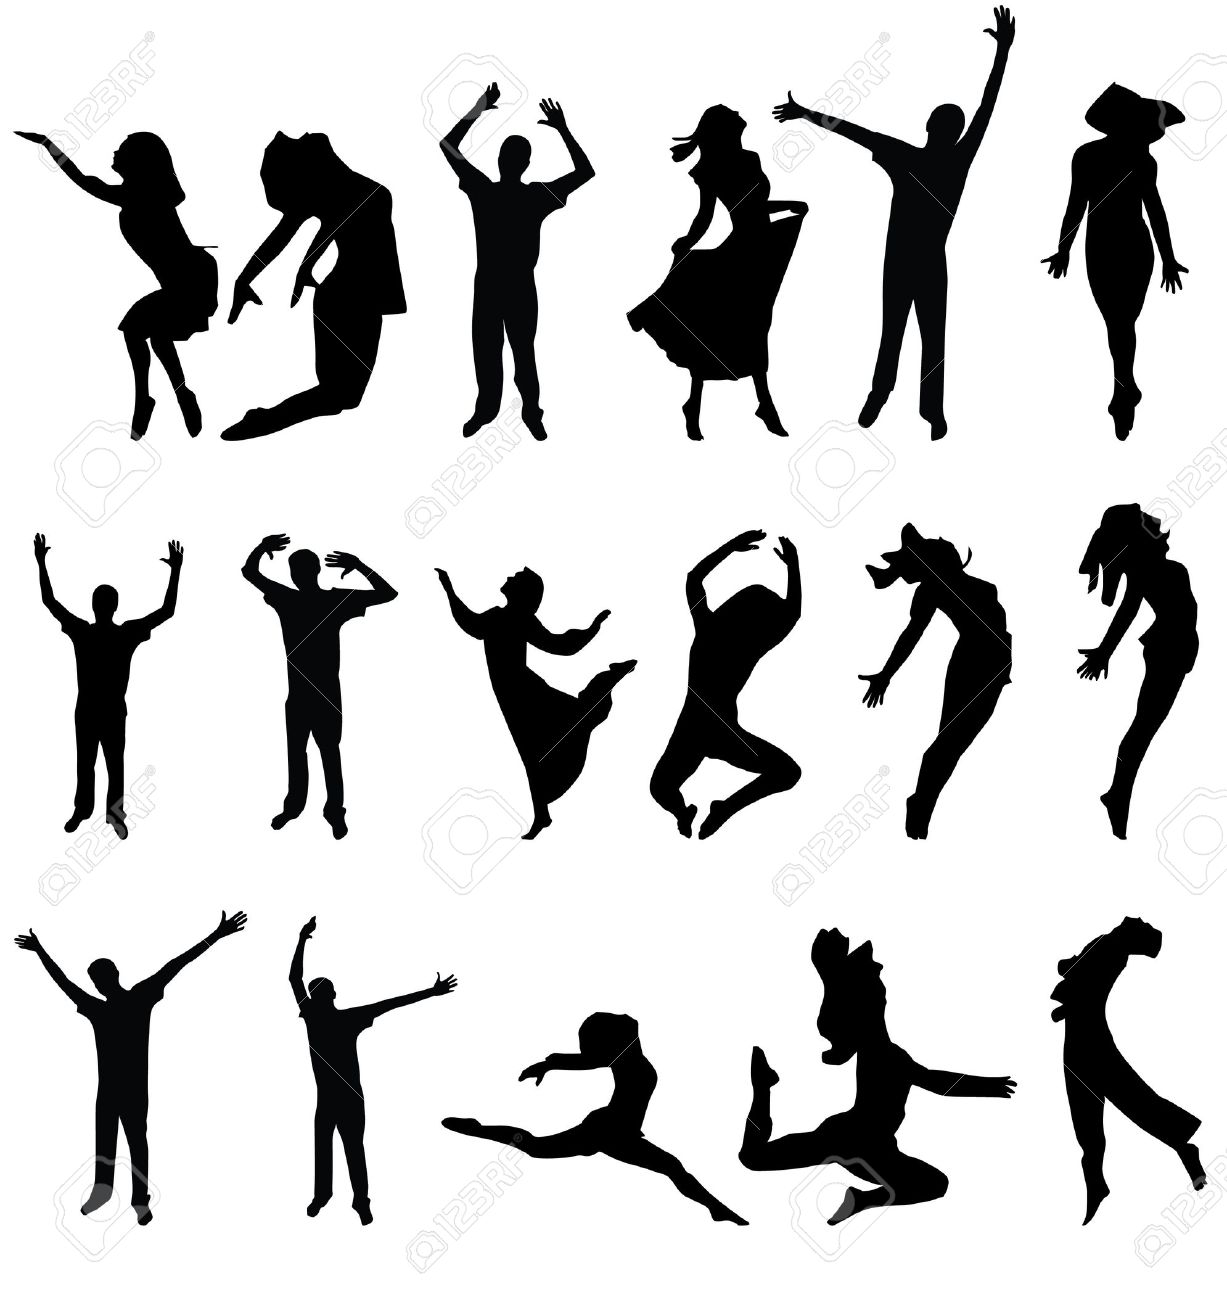 dance many people silhouette. vector illustration Stock Vector - 4203412